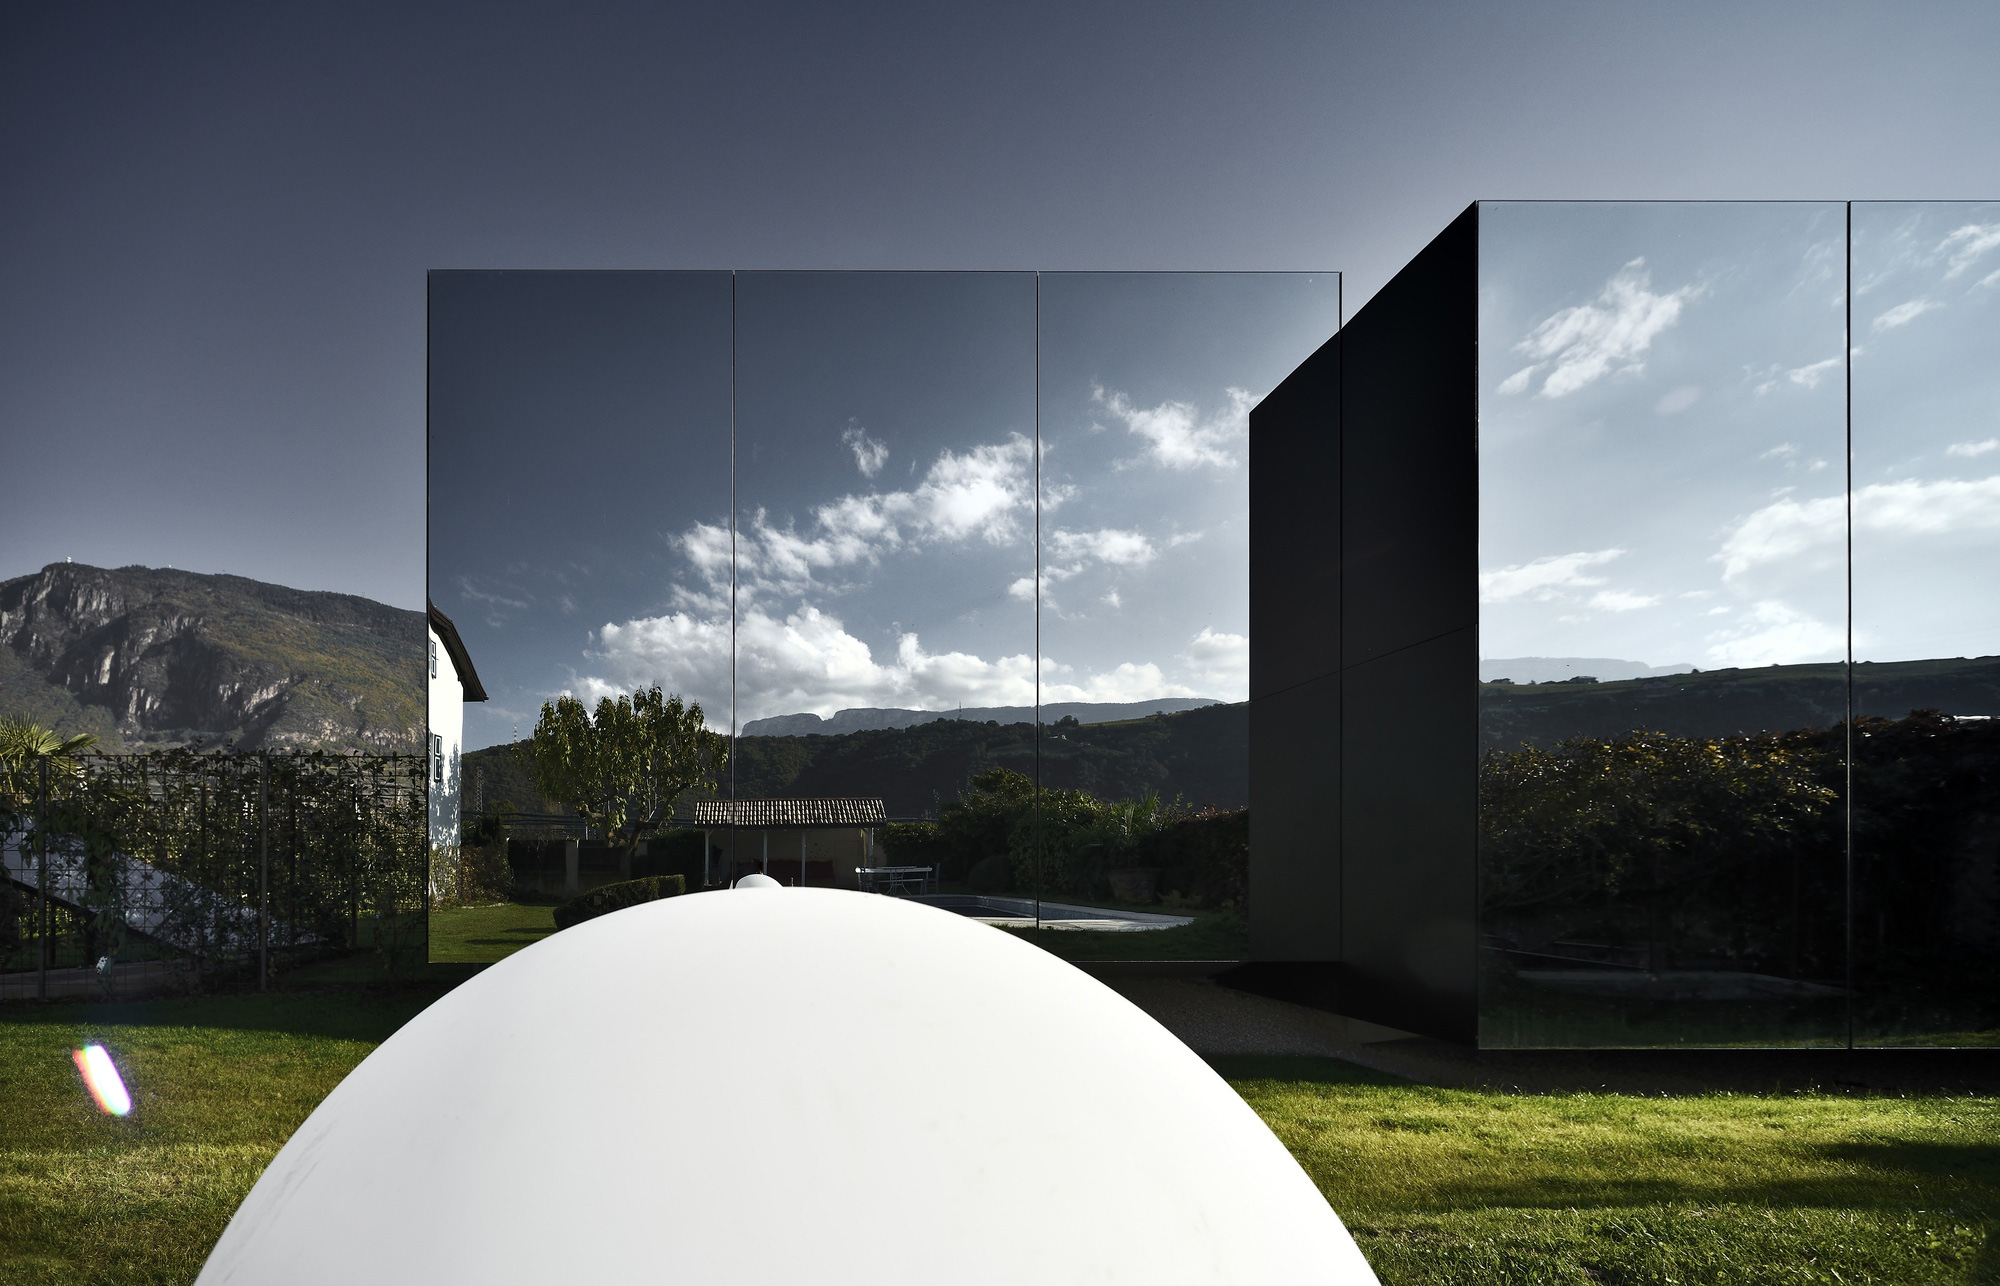 The Mirror Houses / Peter Pichler Architecture (6)